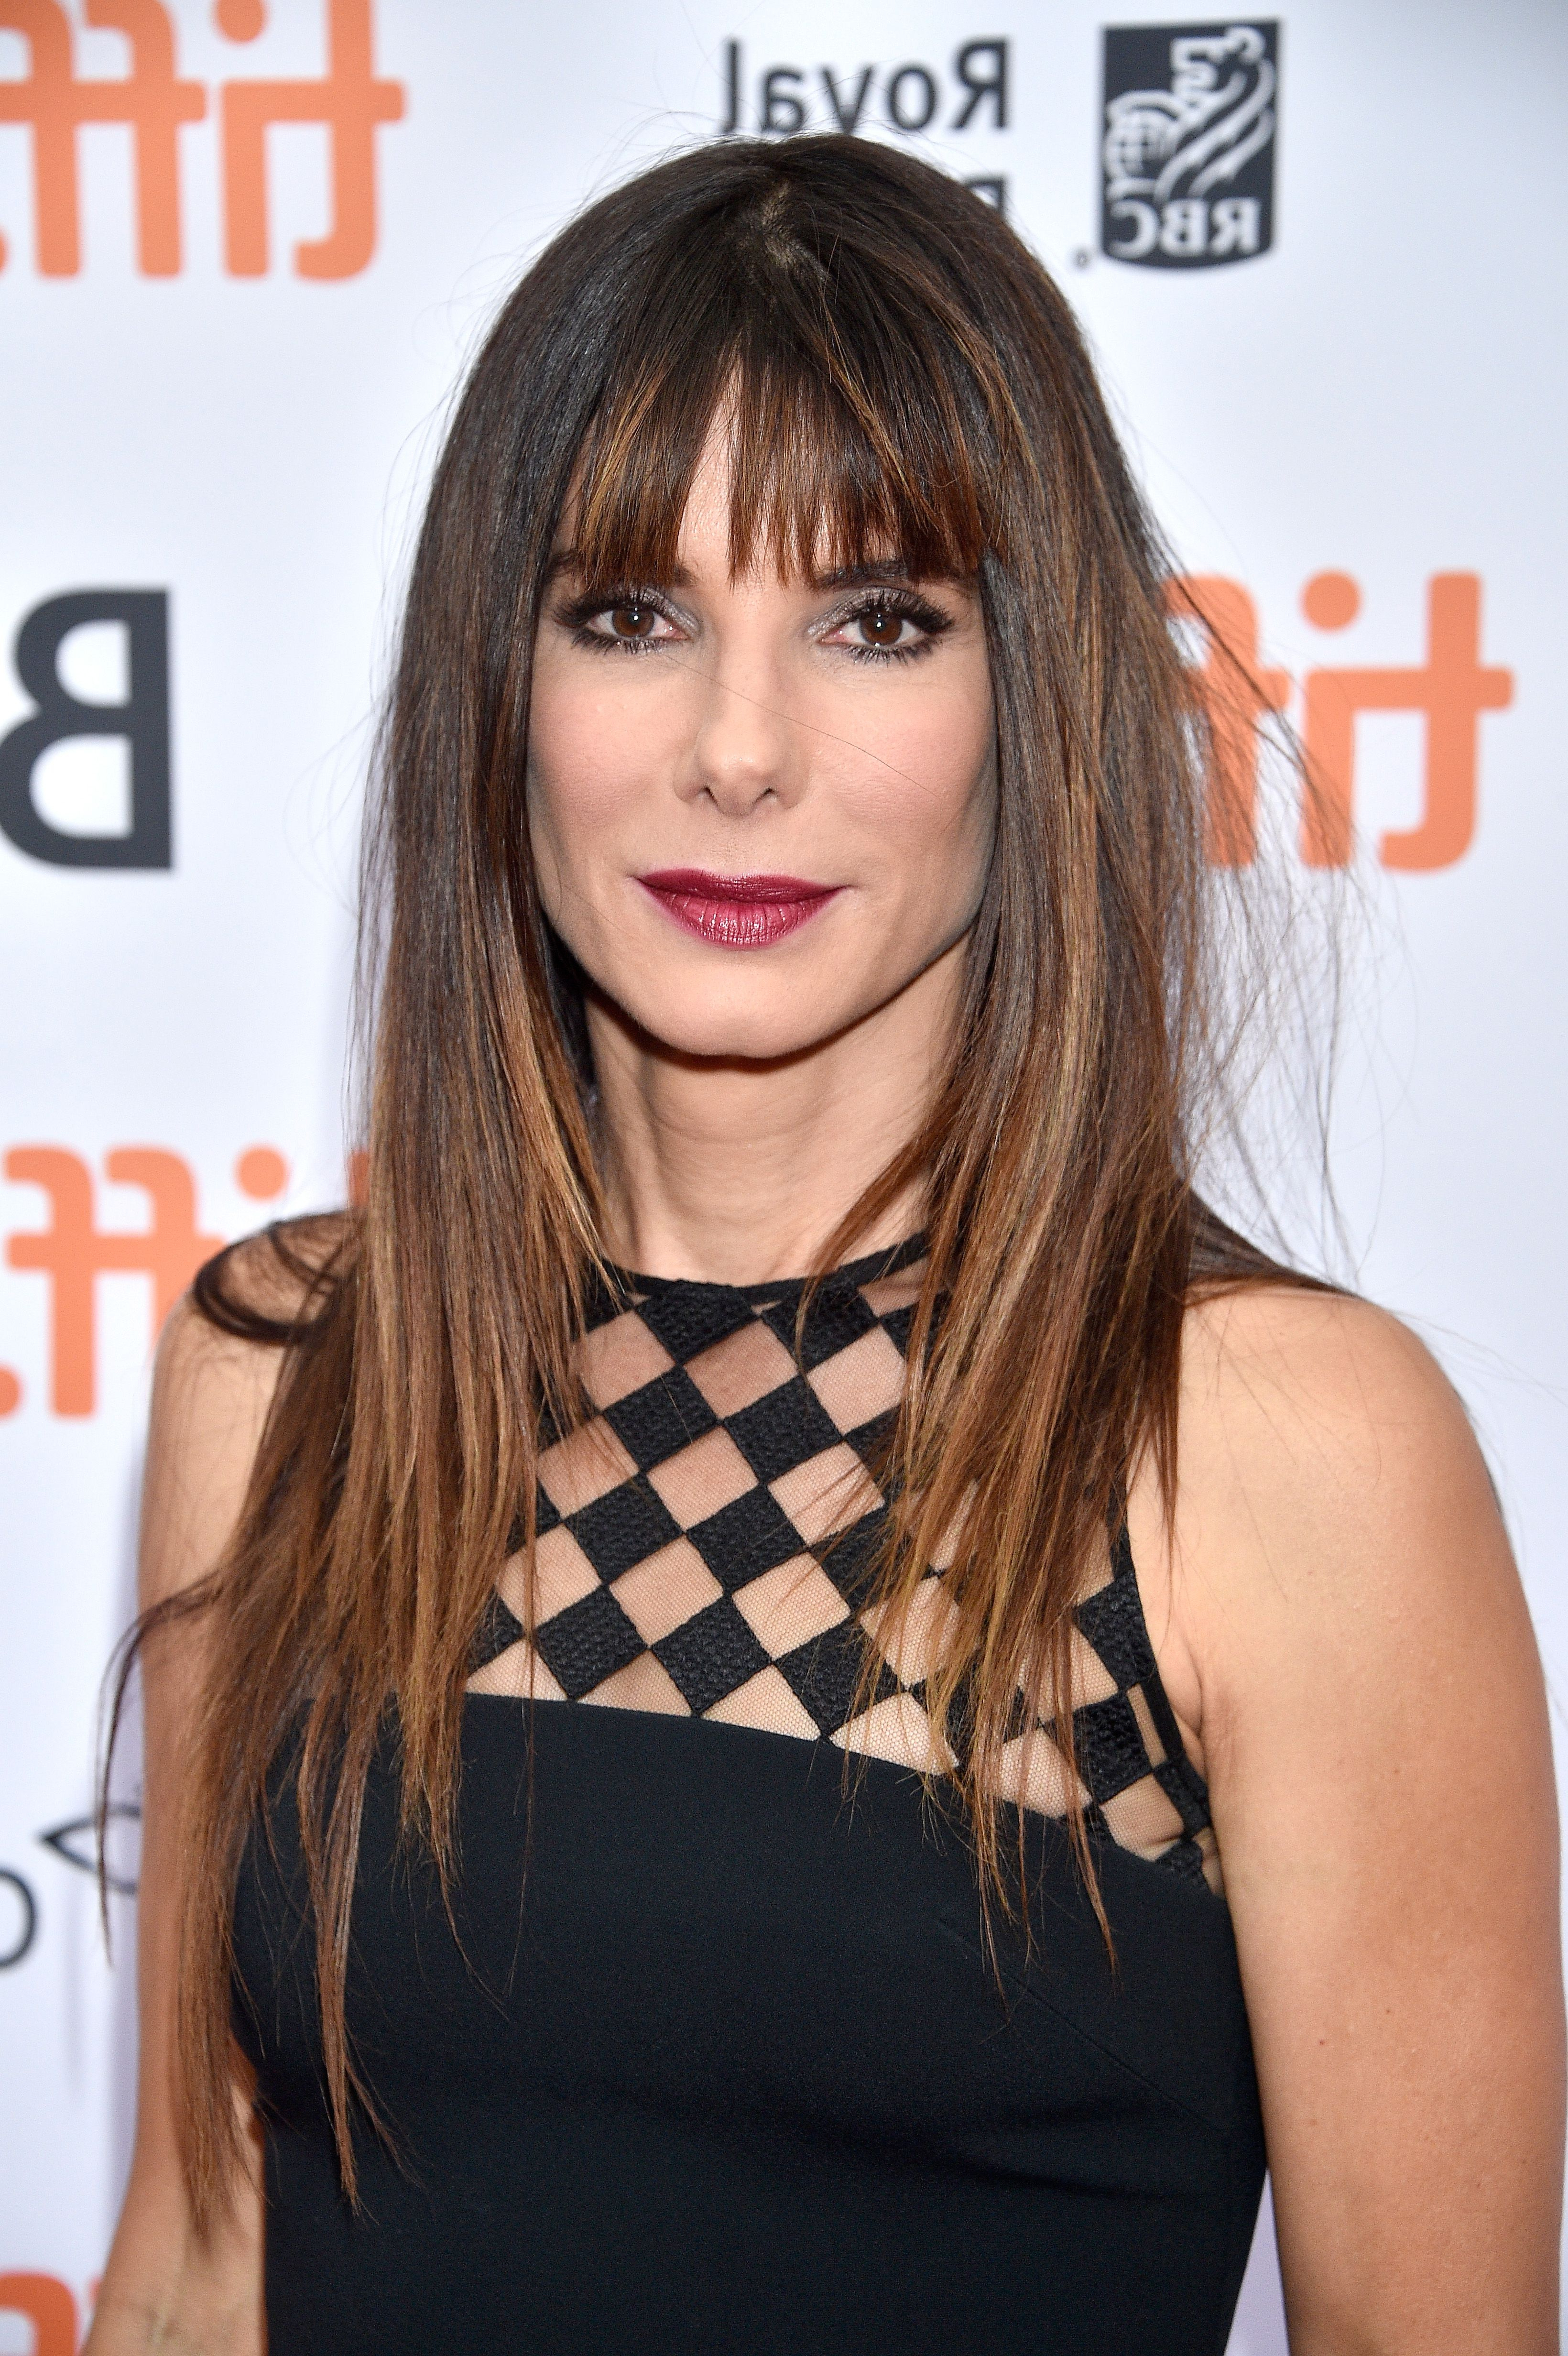 40 Best Layered Haircuts, Hairstyles & Trends For 2018 With Best And Newest Long Feathered Haircuts With Layers (View 4 of 20)